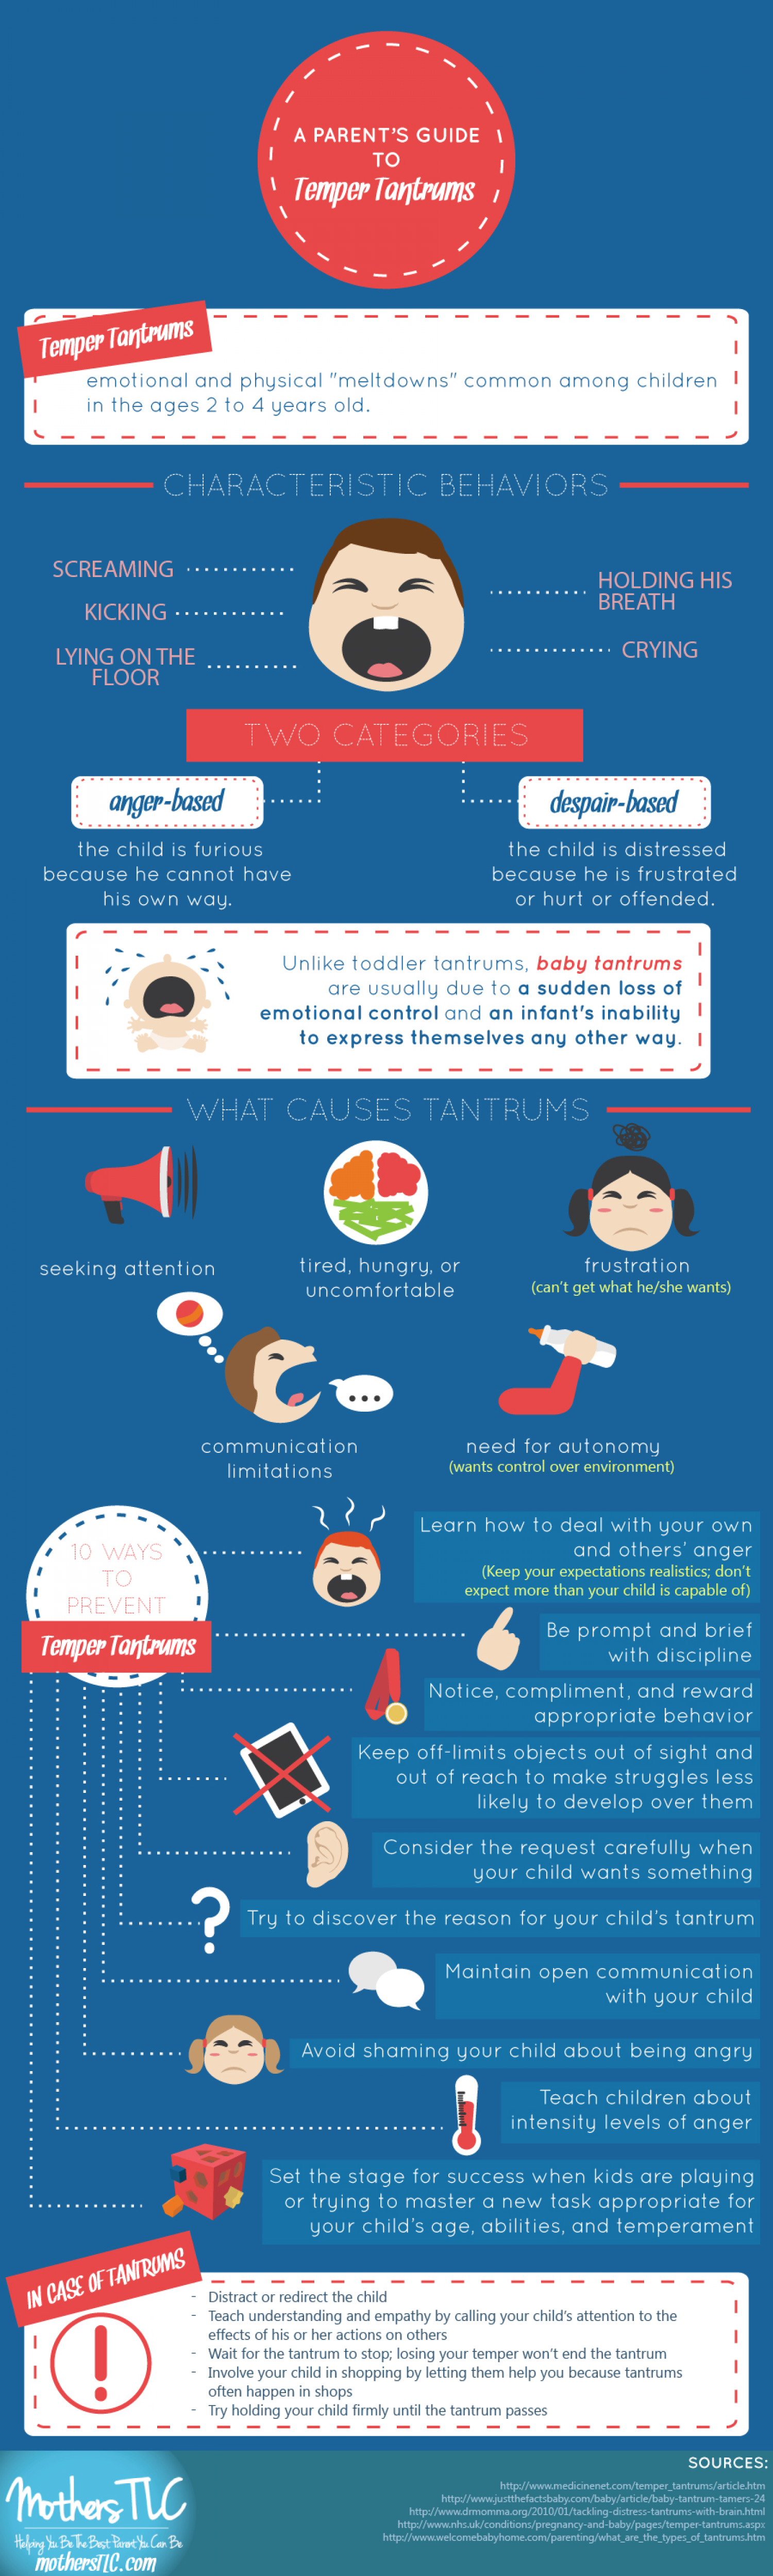 A Parent's Guide to Temper Tantrums Infographic